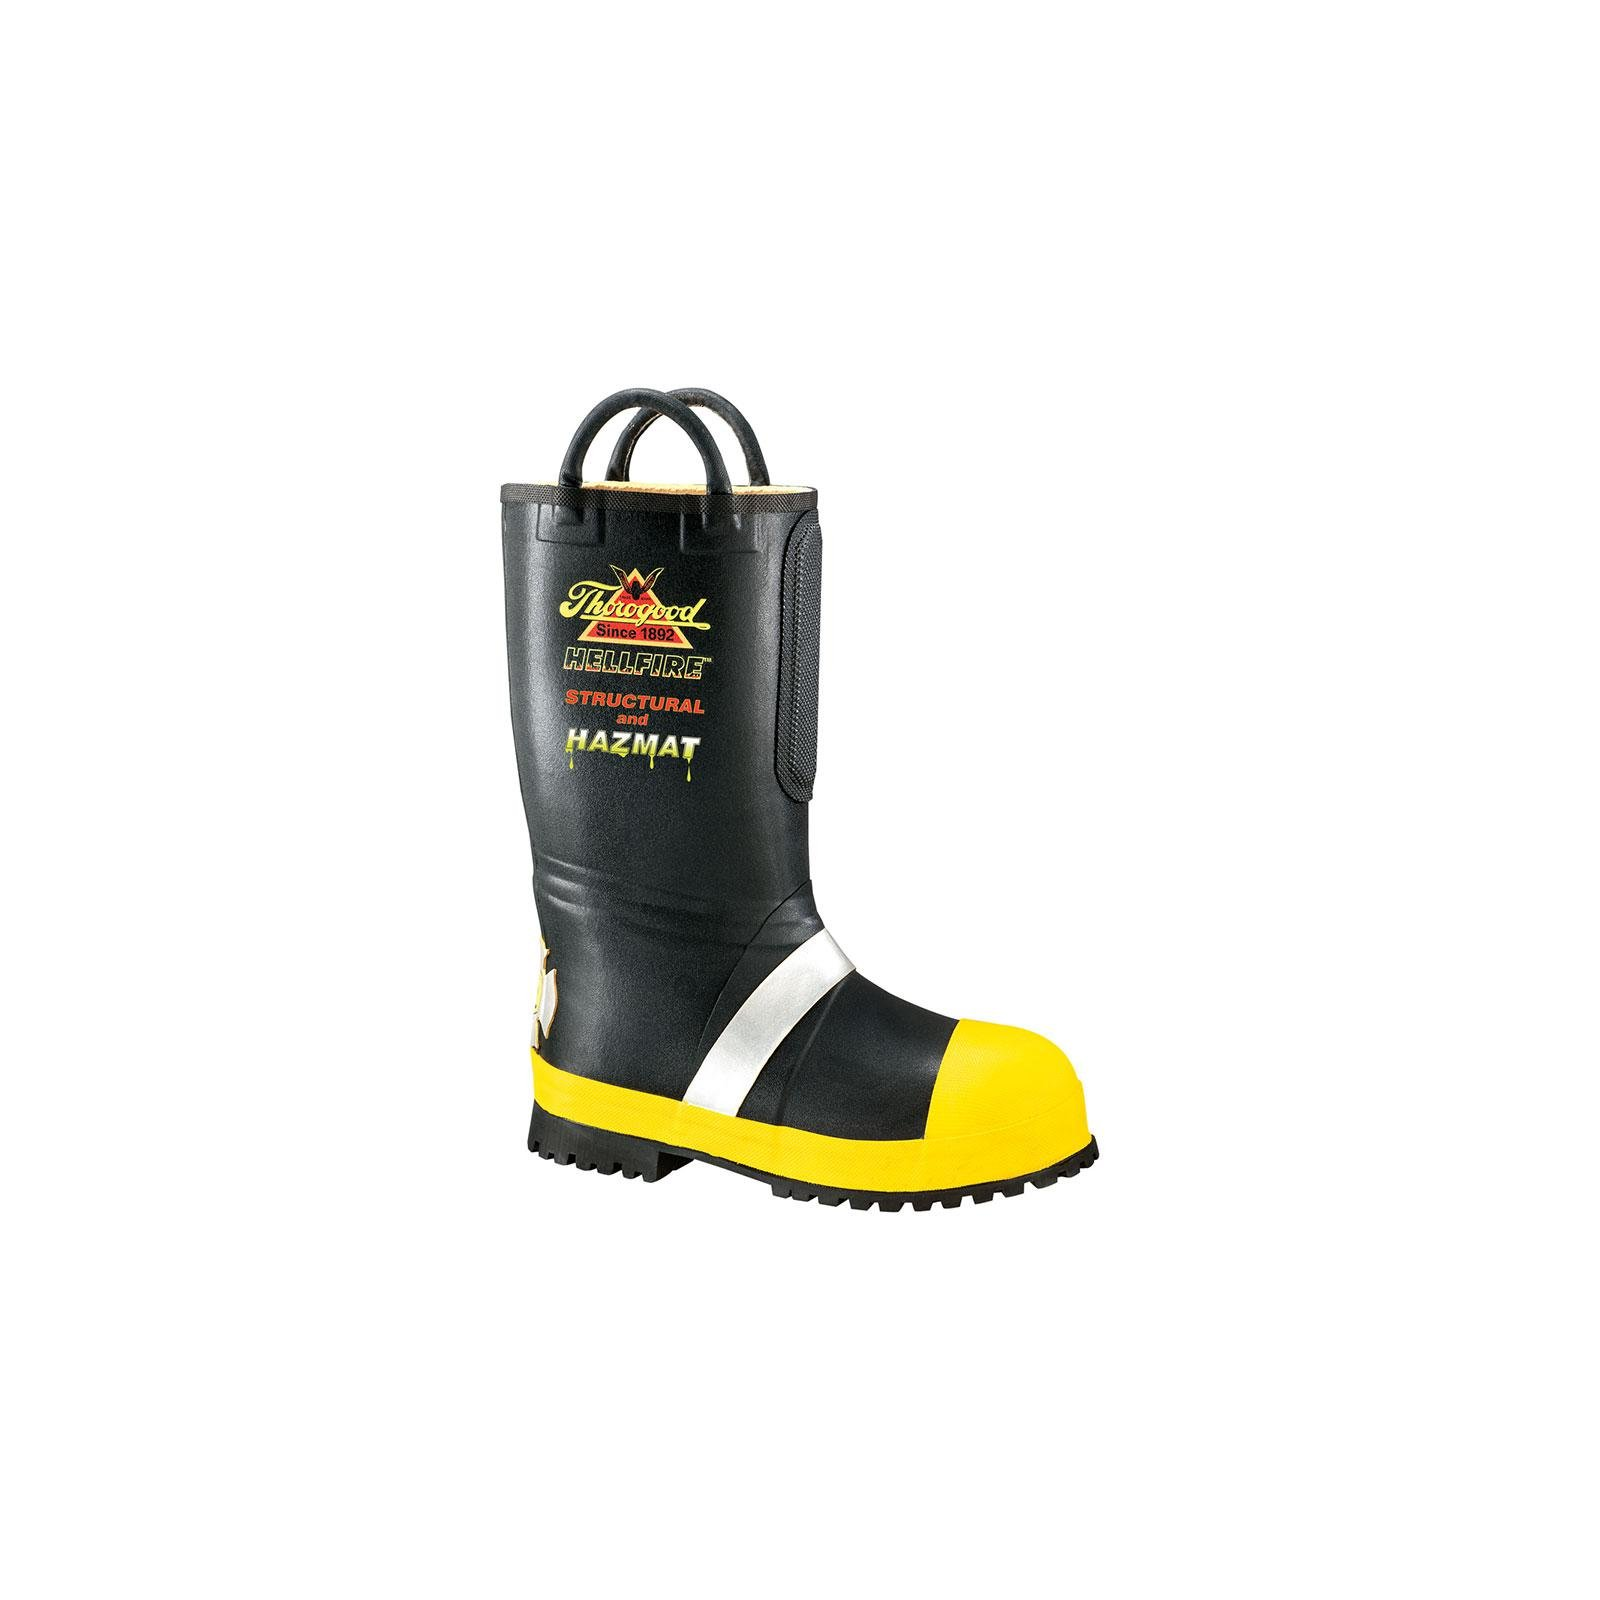 Women's Thorogood 14 inch Rubber Insulated Firefighting Boots with Lug Outsole, BLACK, 8.5